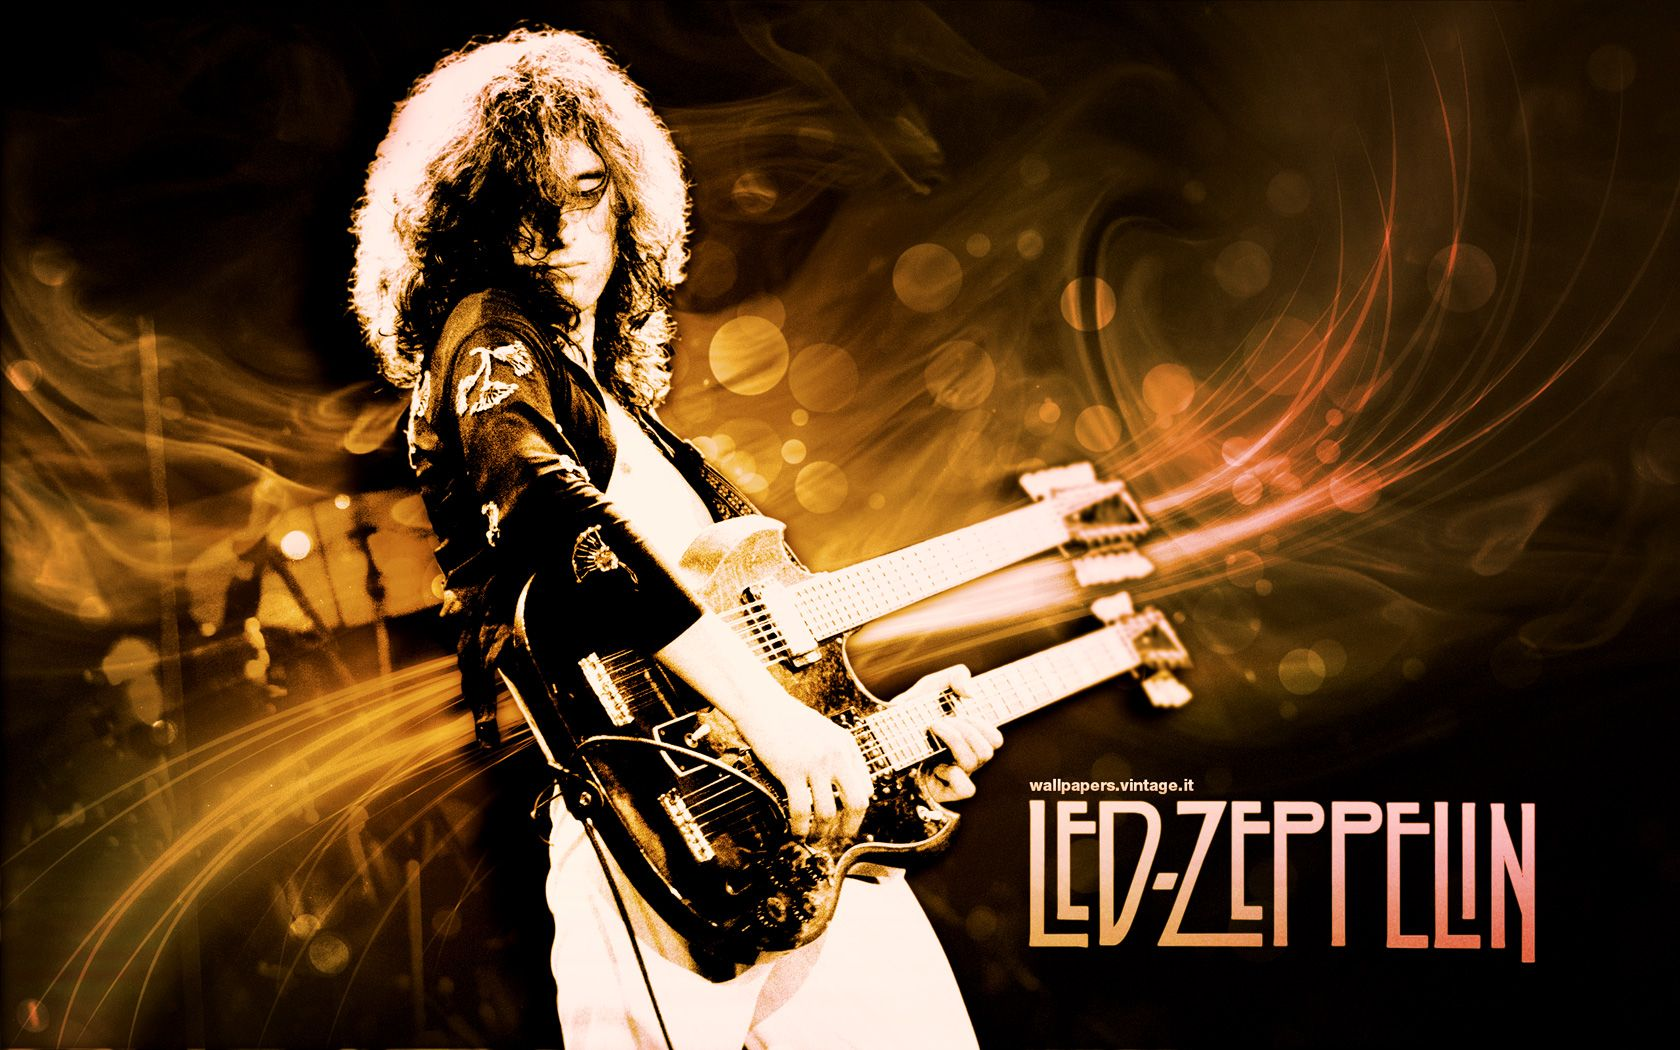 Led Zeppelin Wallpaper Free Desktop Hd Ipad Iphone Wallpapers Led Zeppelin Wallpaper Led Zeppelin Led Zeppelin Greatest Hits